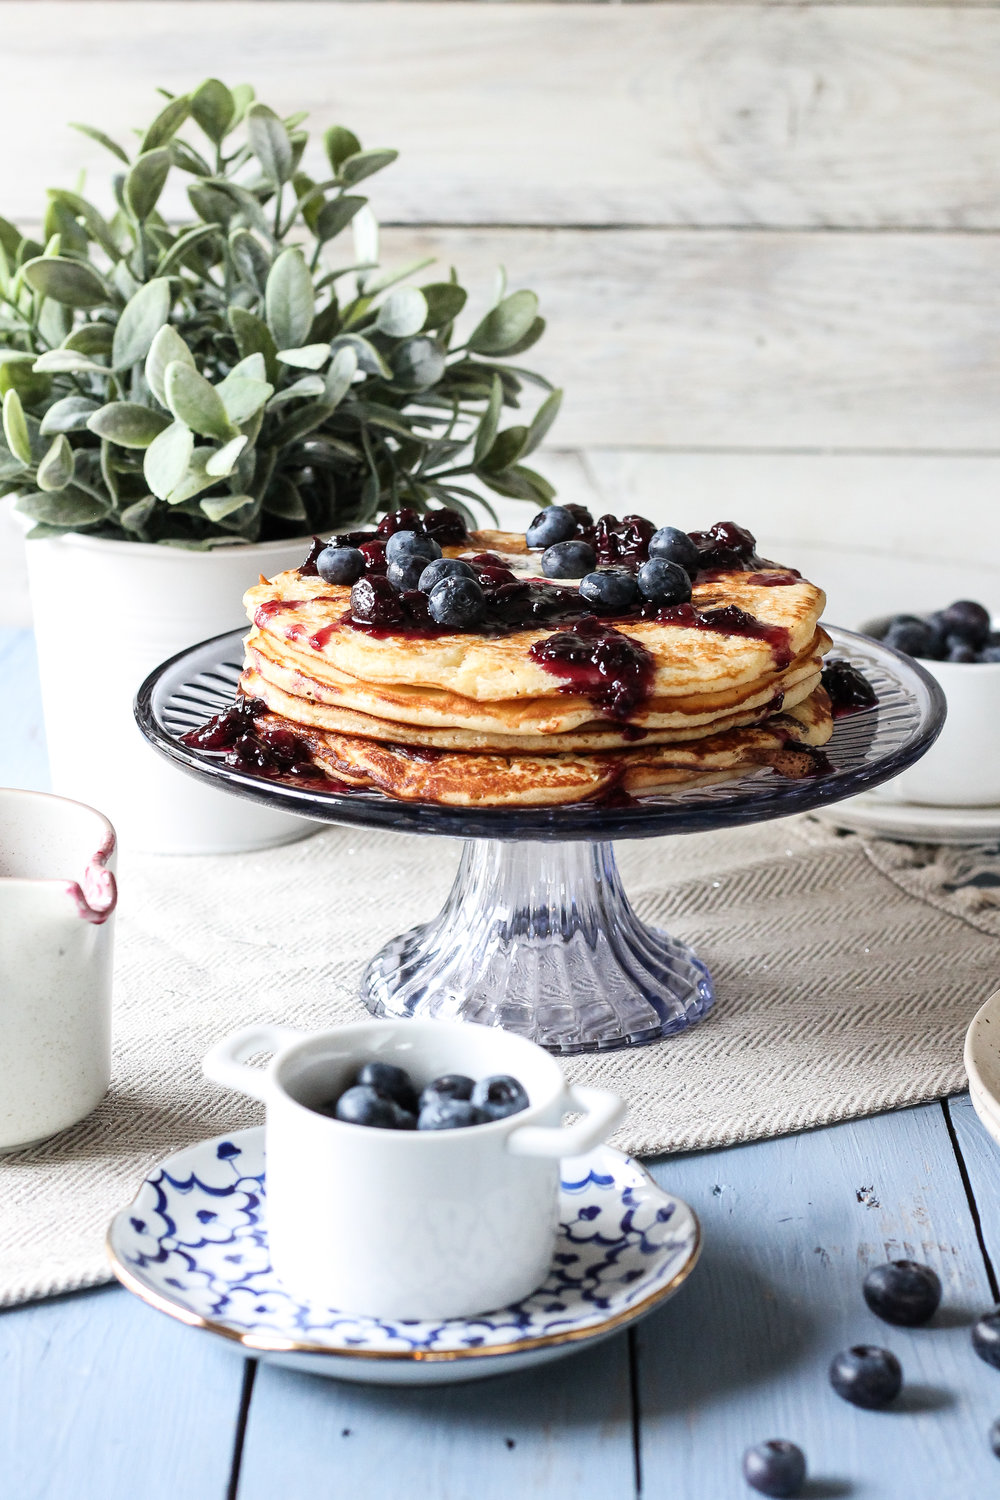 How about making this weekend's pancakes a little more interesting?  Check out these BACON & BROWN SUGAR PANCAKES with BLUEBERRY CINNAMON MAPLE SYRUP on www.pedanticfoodie.com!!